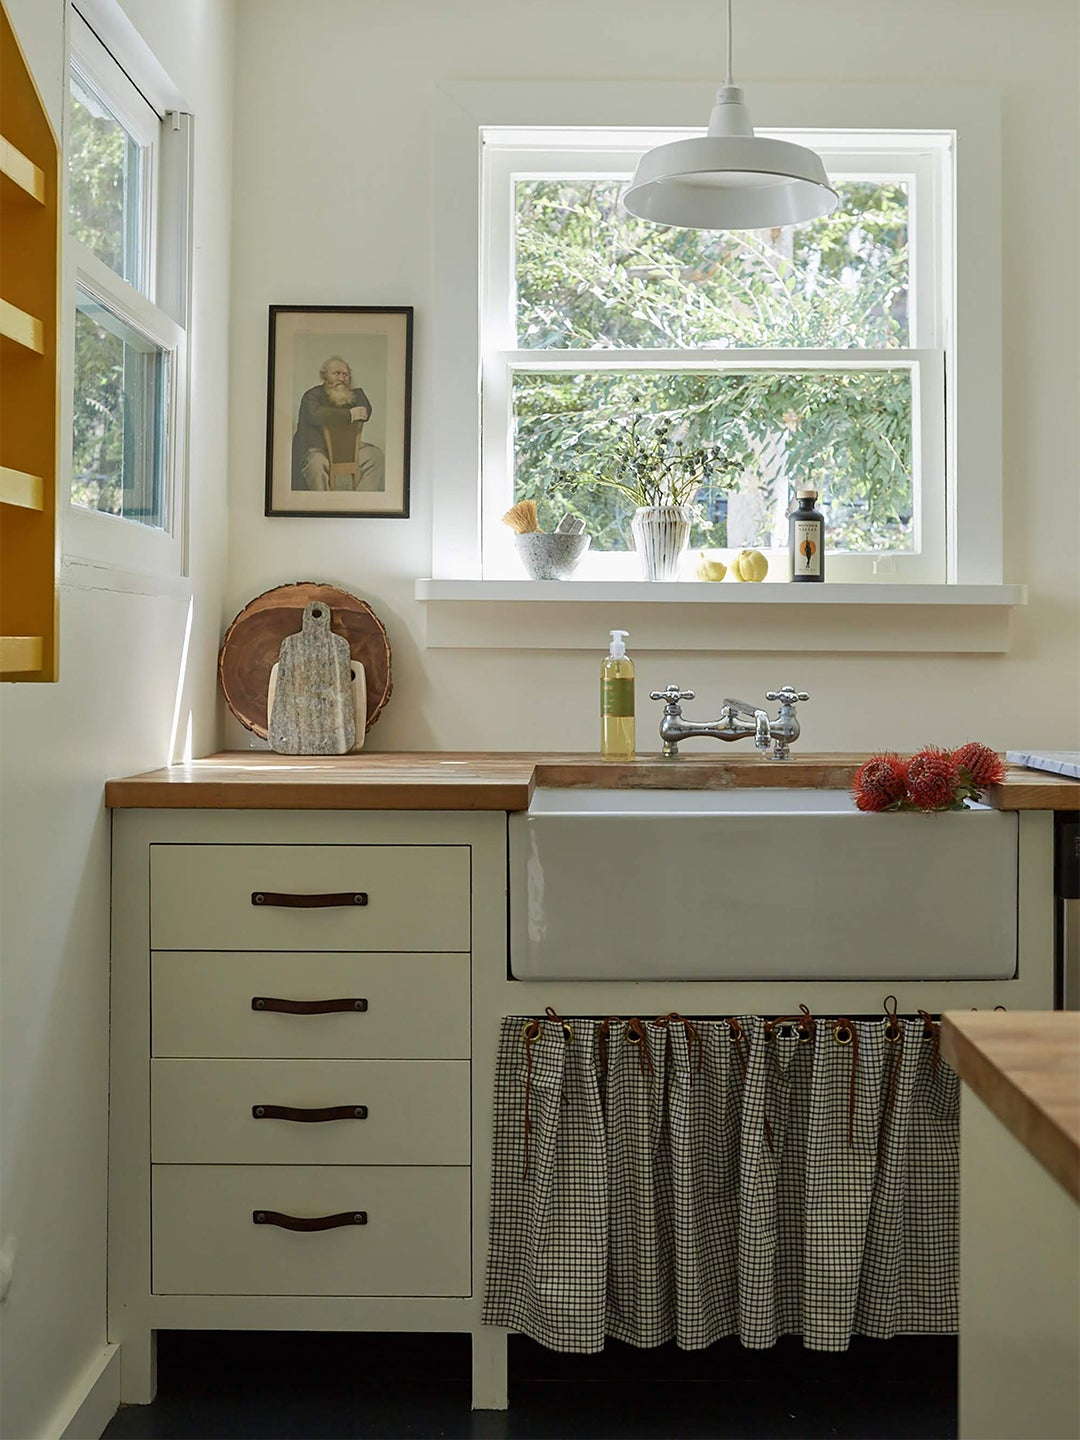 rustic kitchen with skirted sink